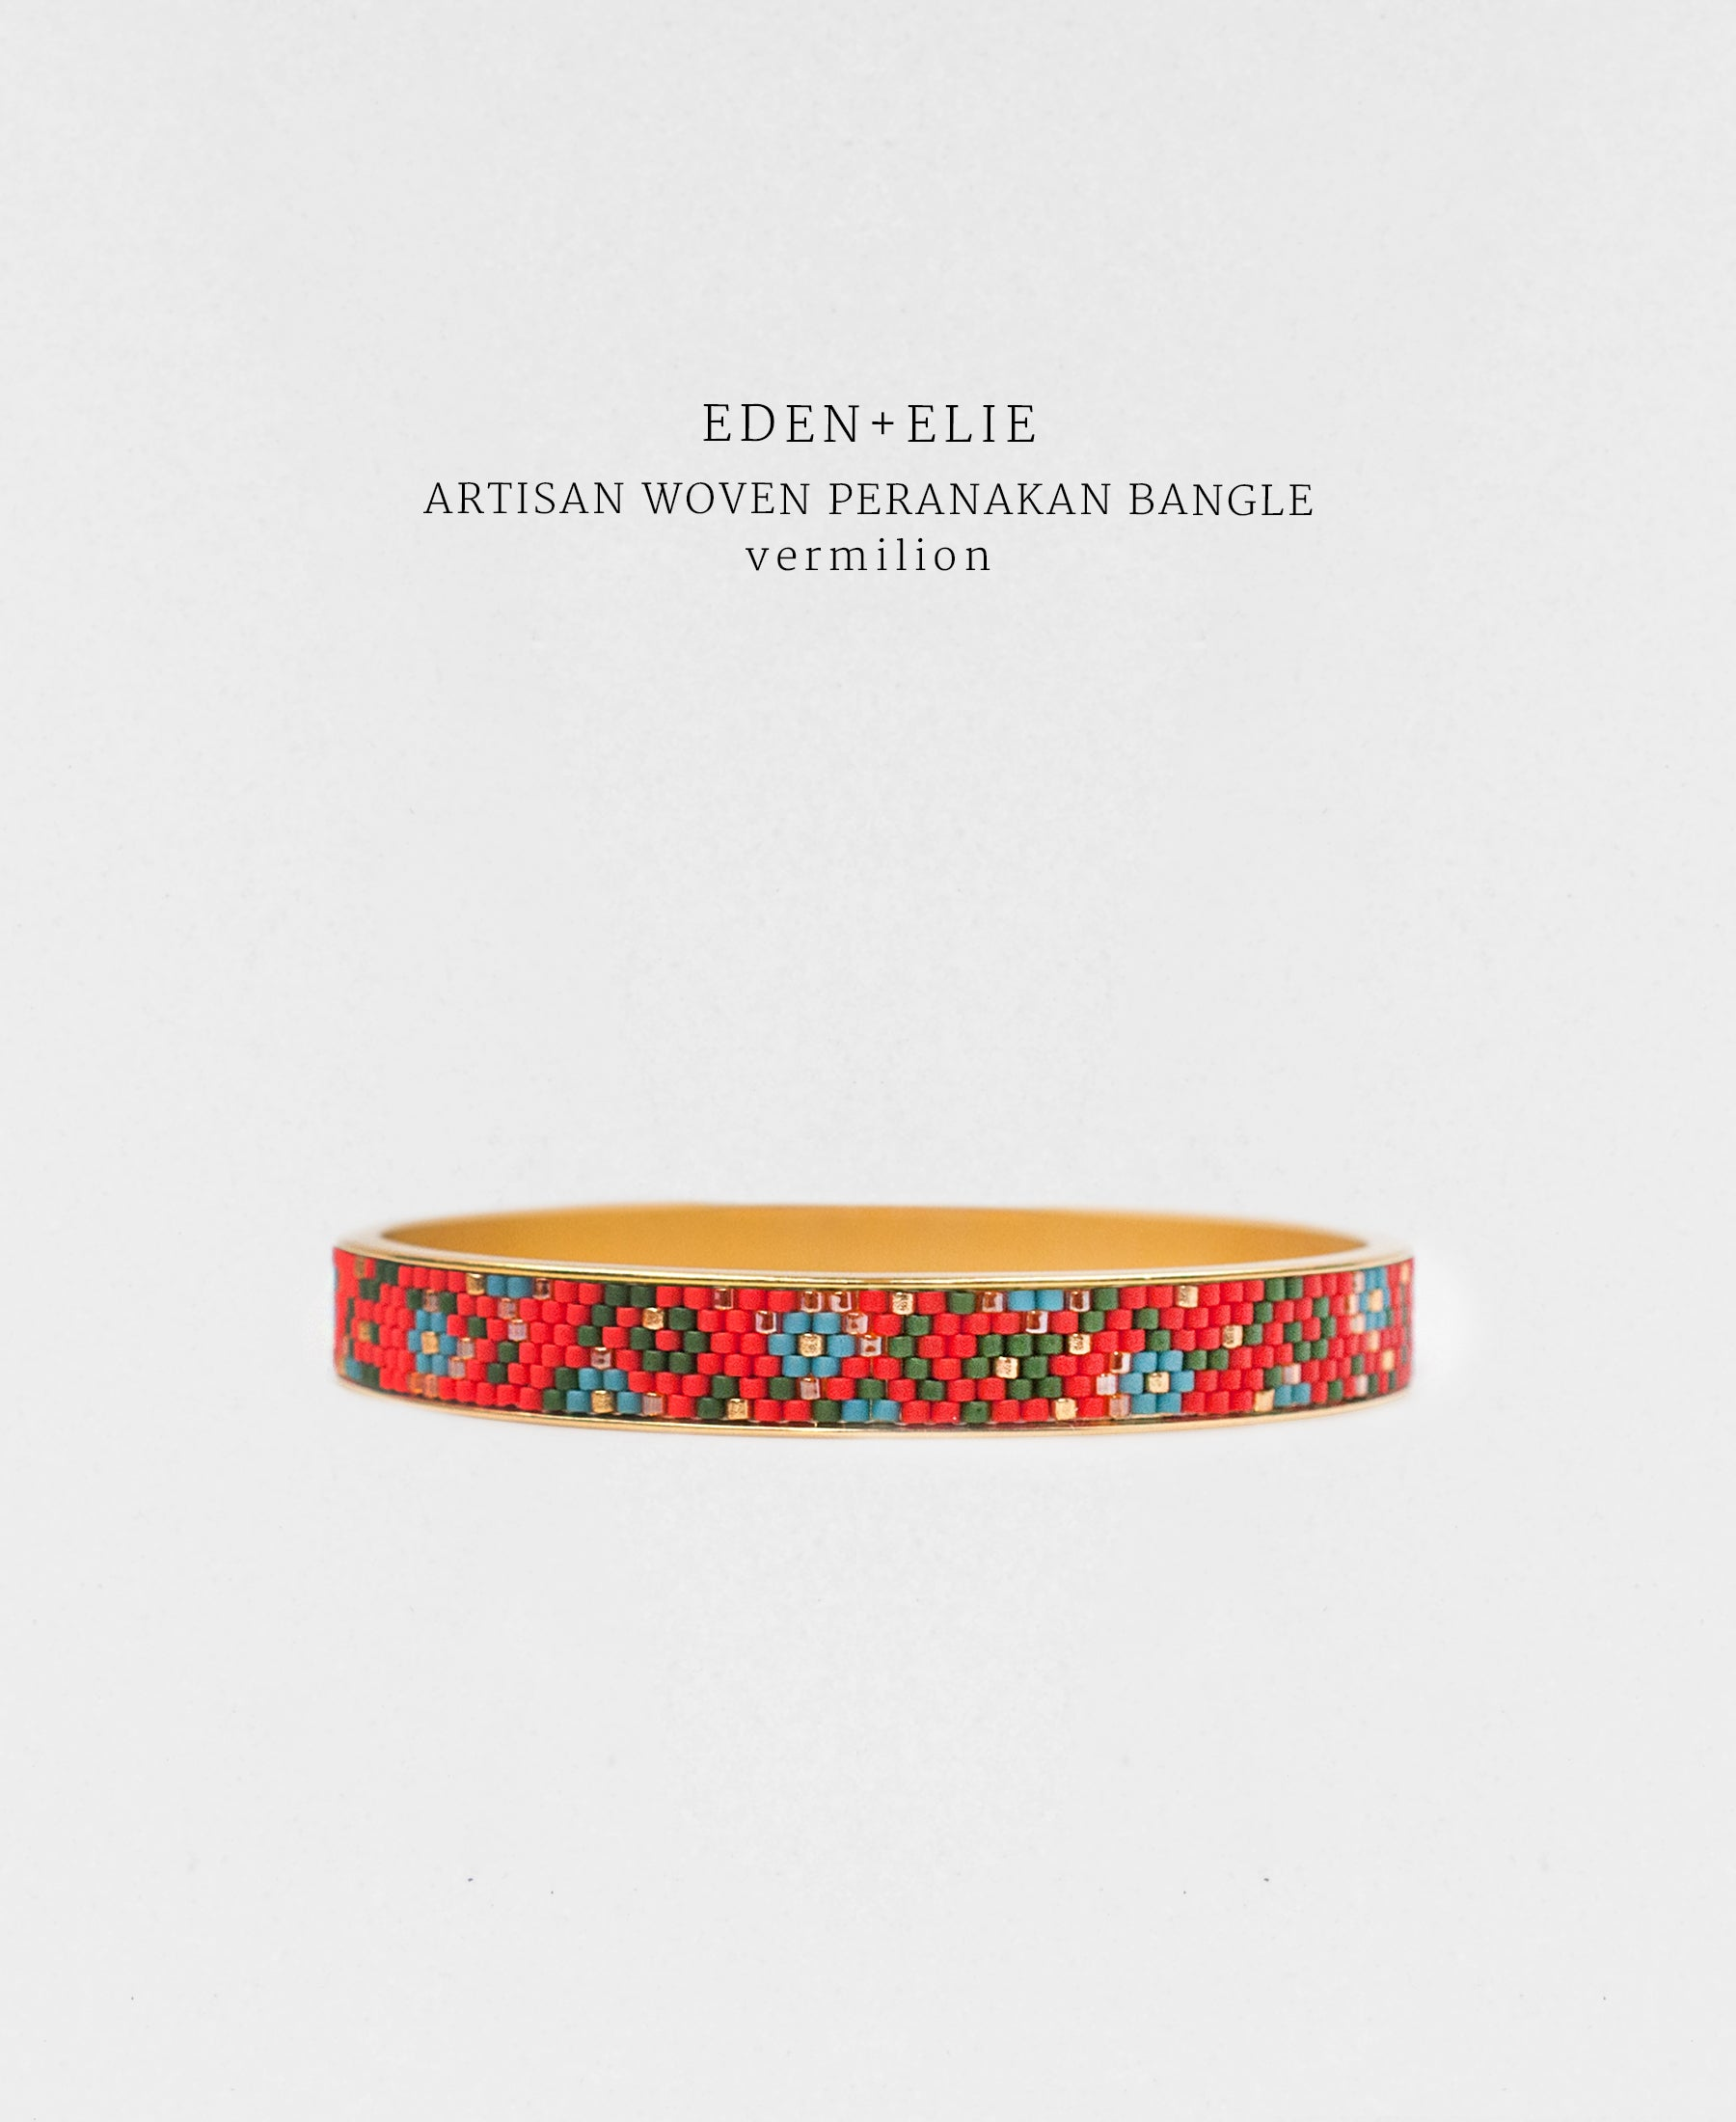 EDEN + ELIE Modern Peranakan gold narrow bangle -  vermilion